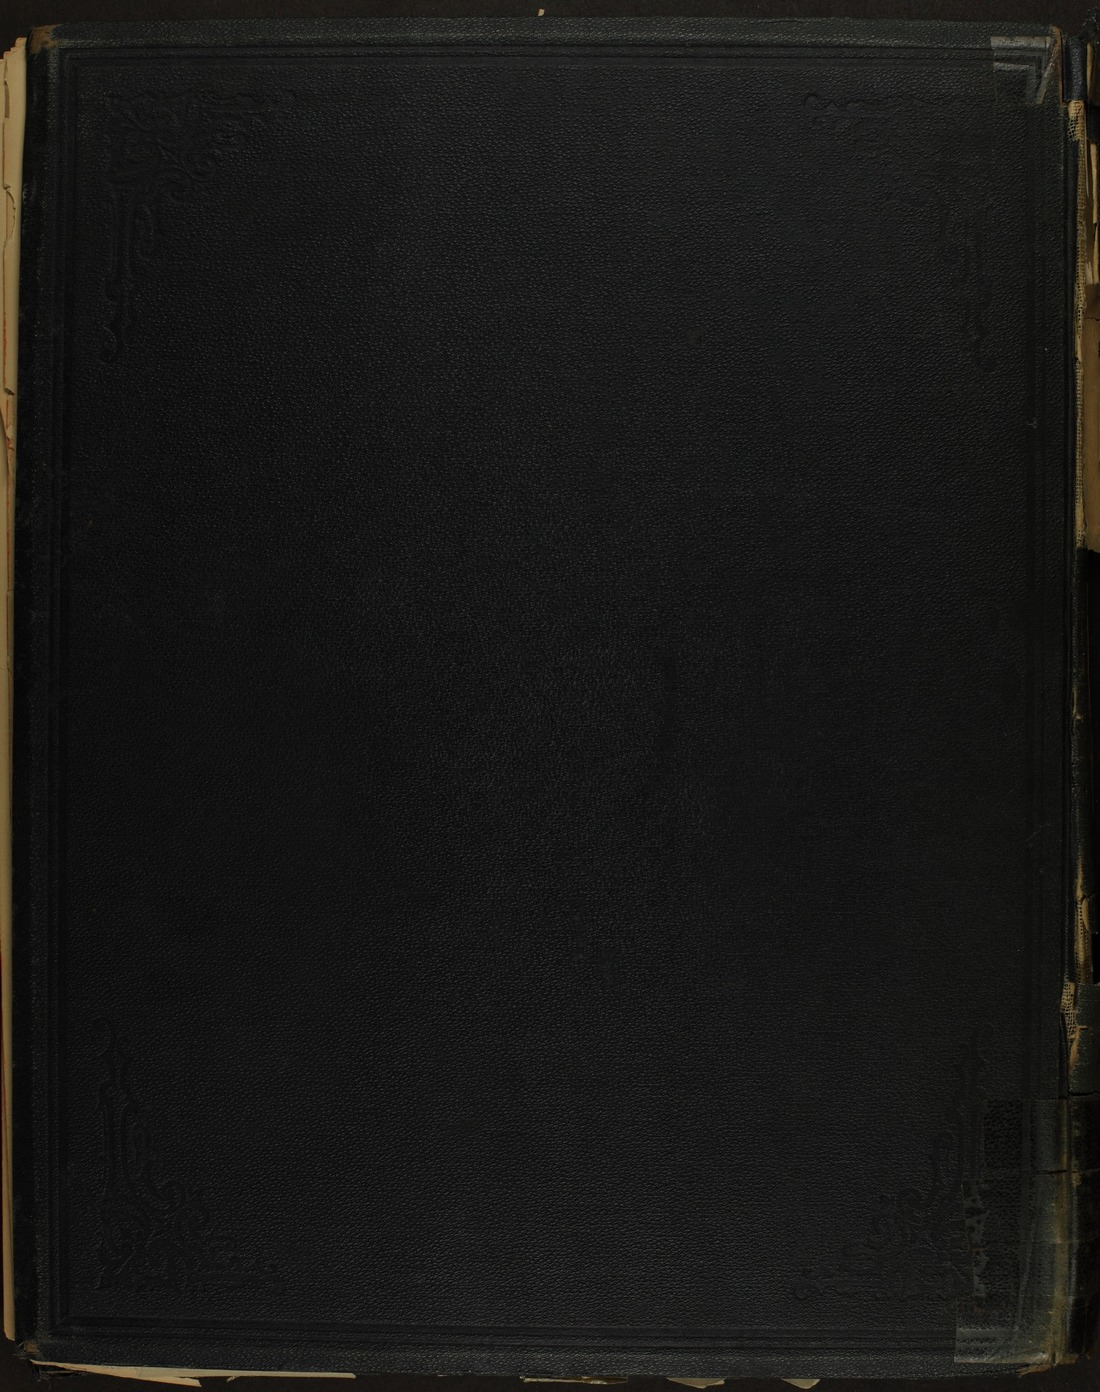 Historical plat book of Washington County, Kansas - 92